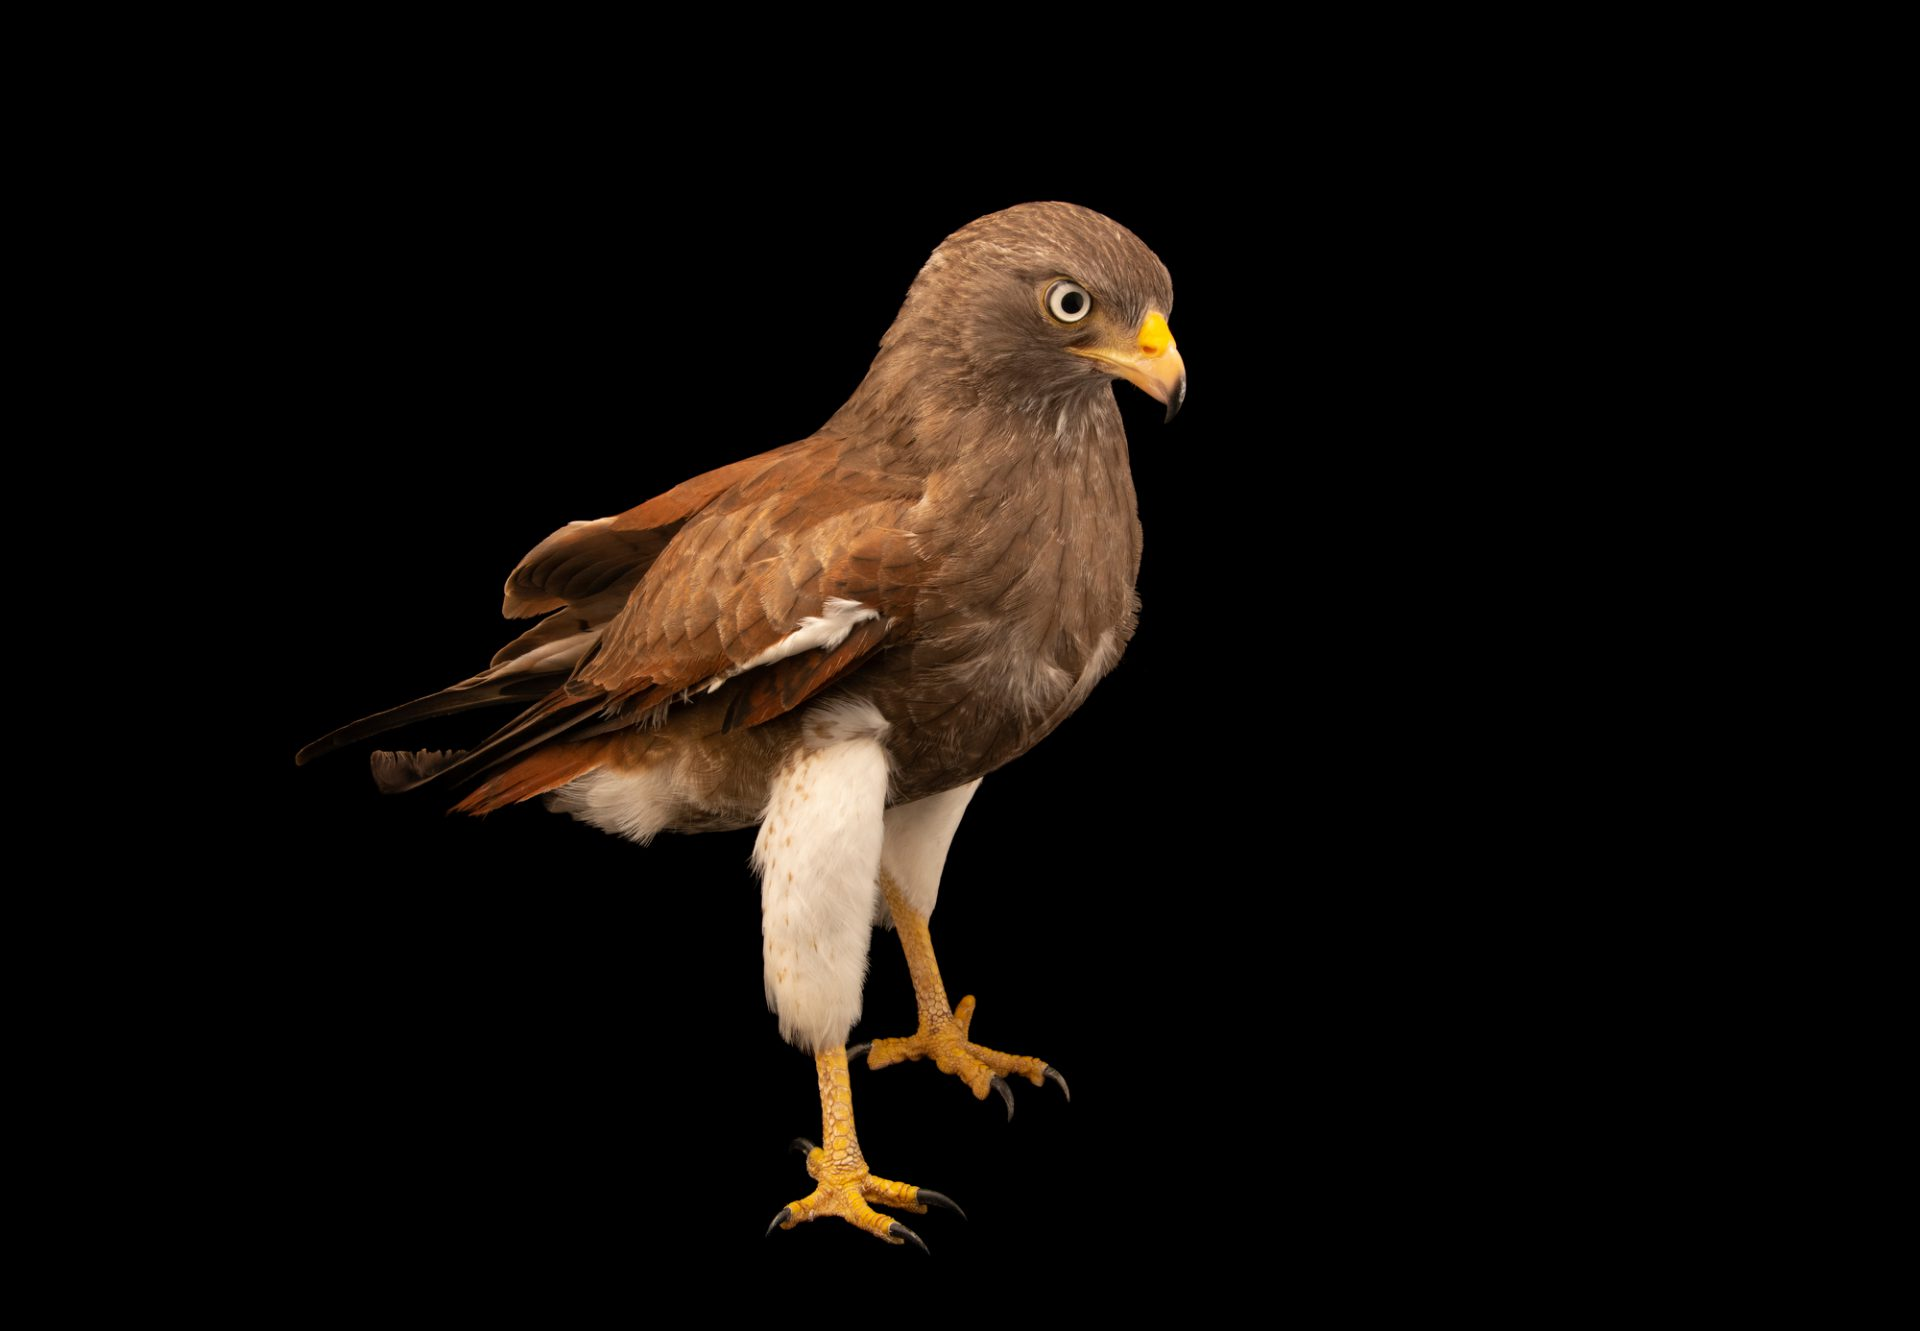 Photo: Rufous-winged buzzard (Butastur liventer) at the Angkor Centre for Conservation of Biodiversity (ACCB) in Siem Reap, Cambodia.